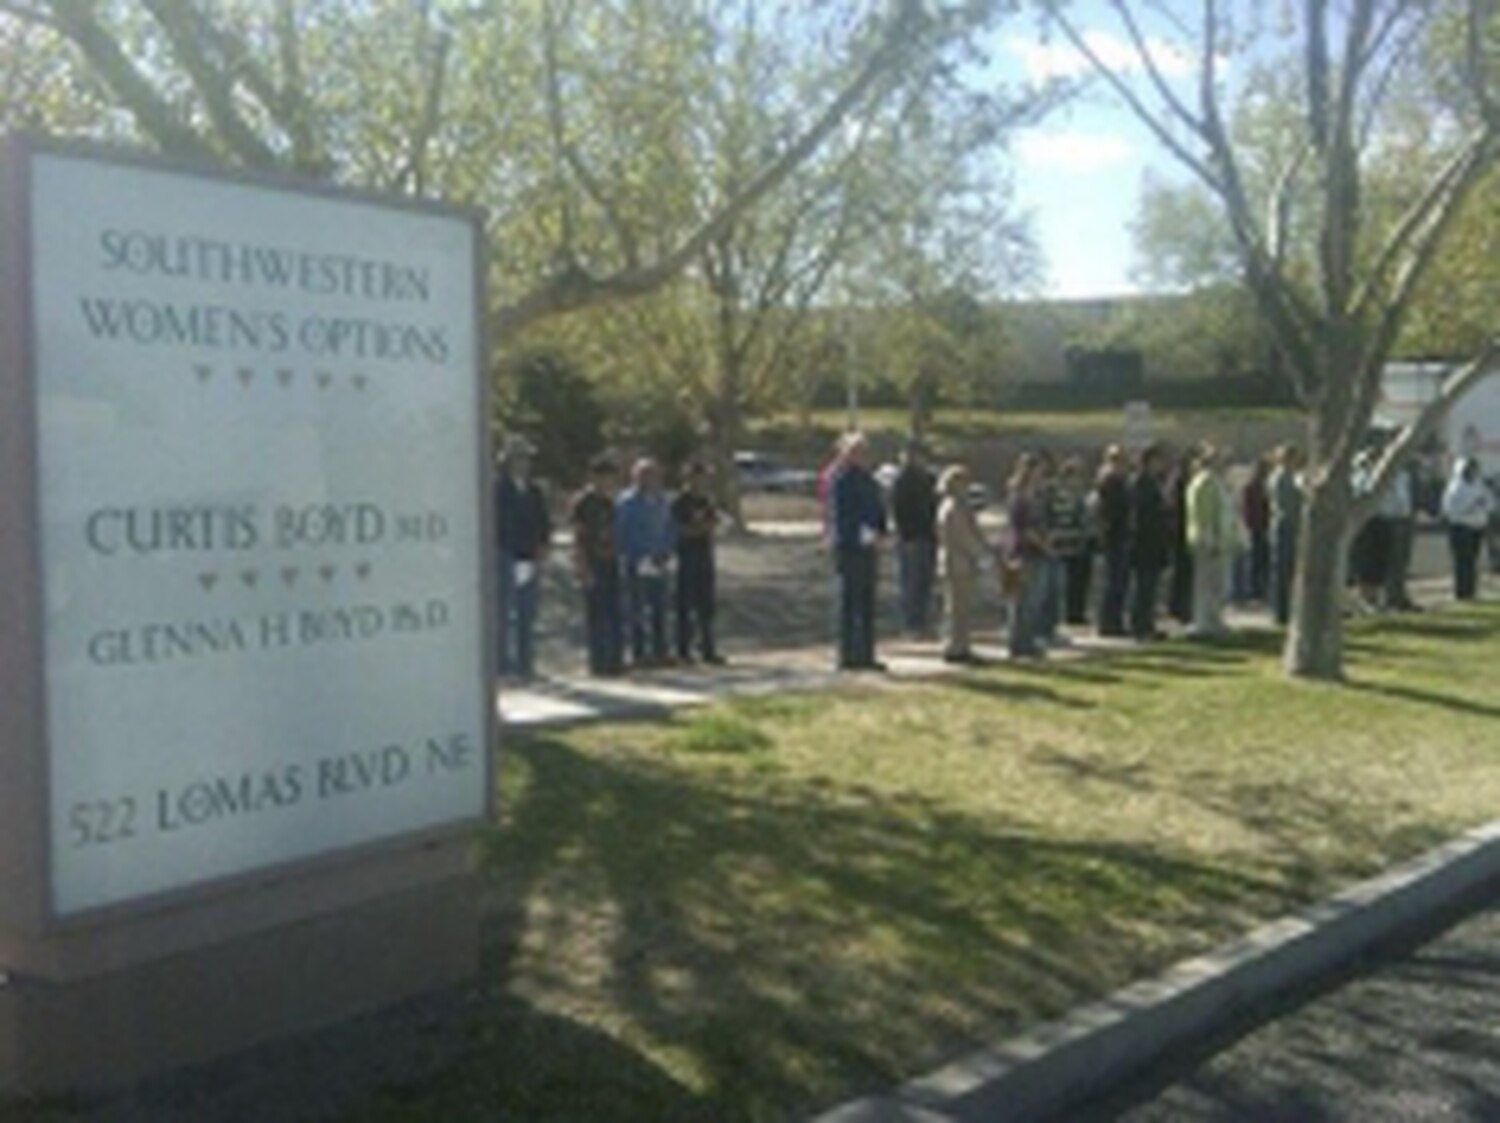 Anti-abortion protesters gather outside another Albuquerque clinic, Southwestern Women's Options.